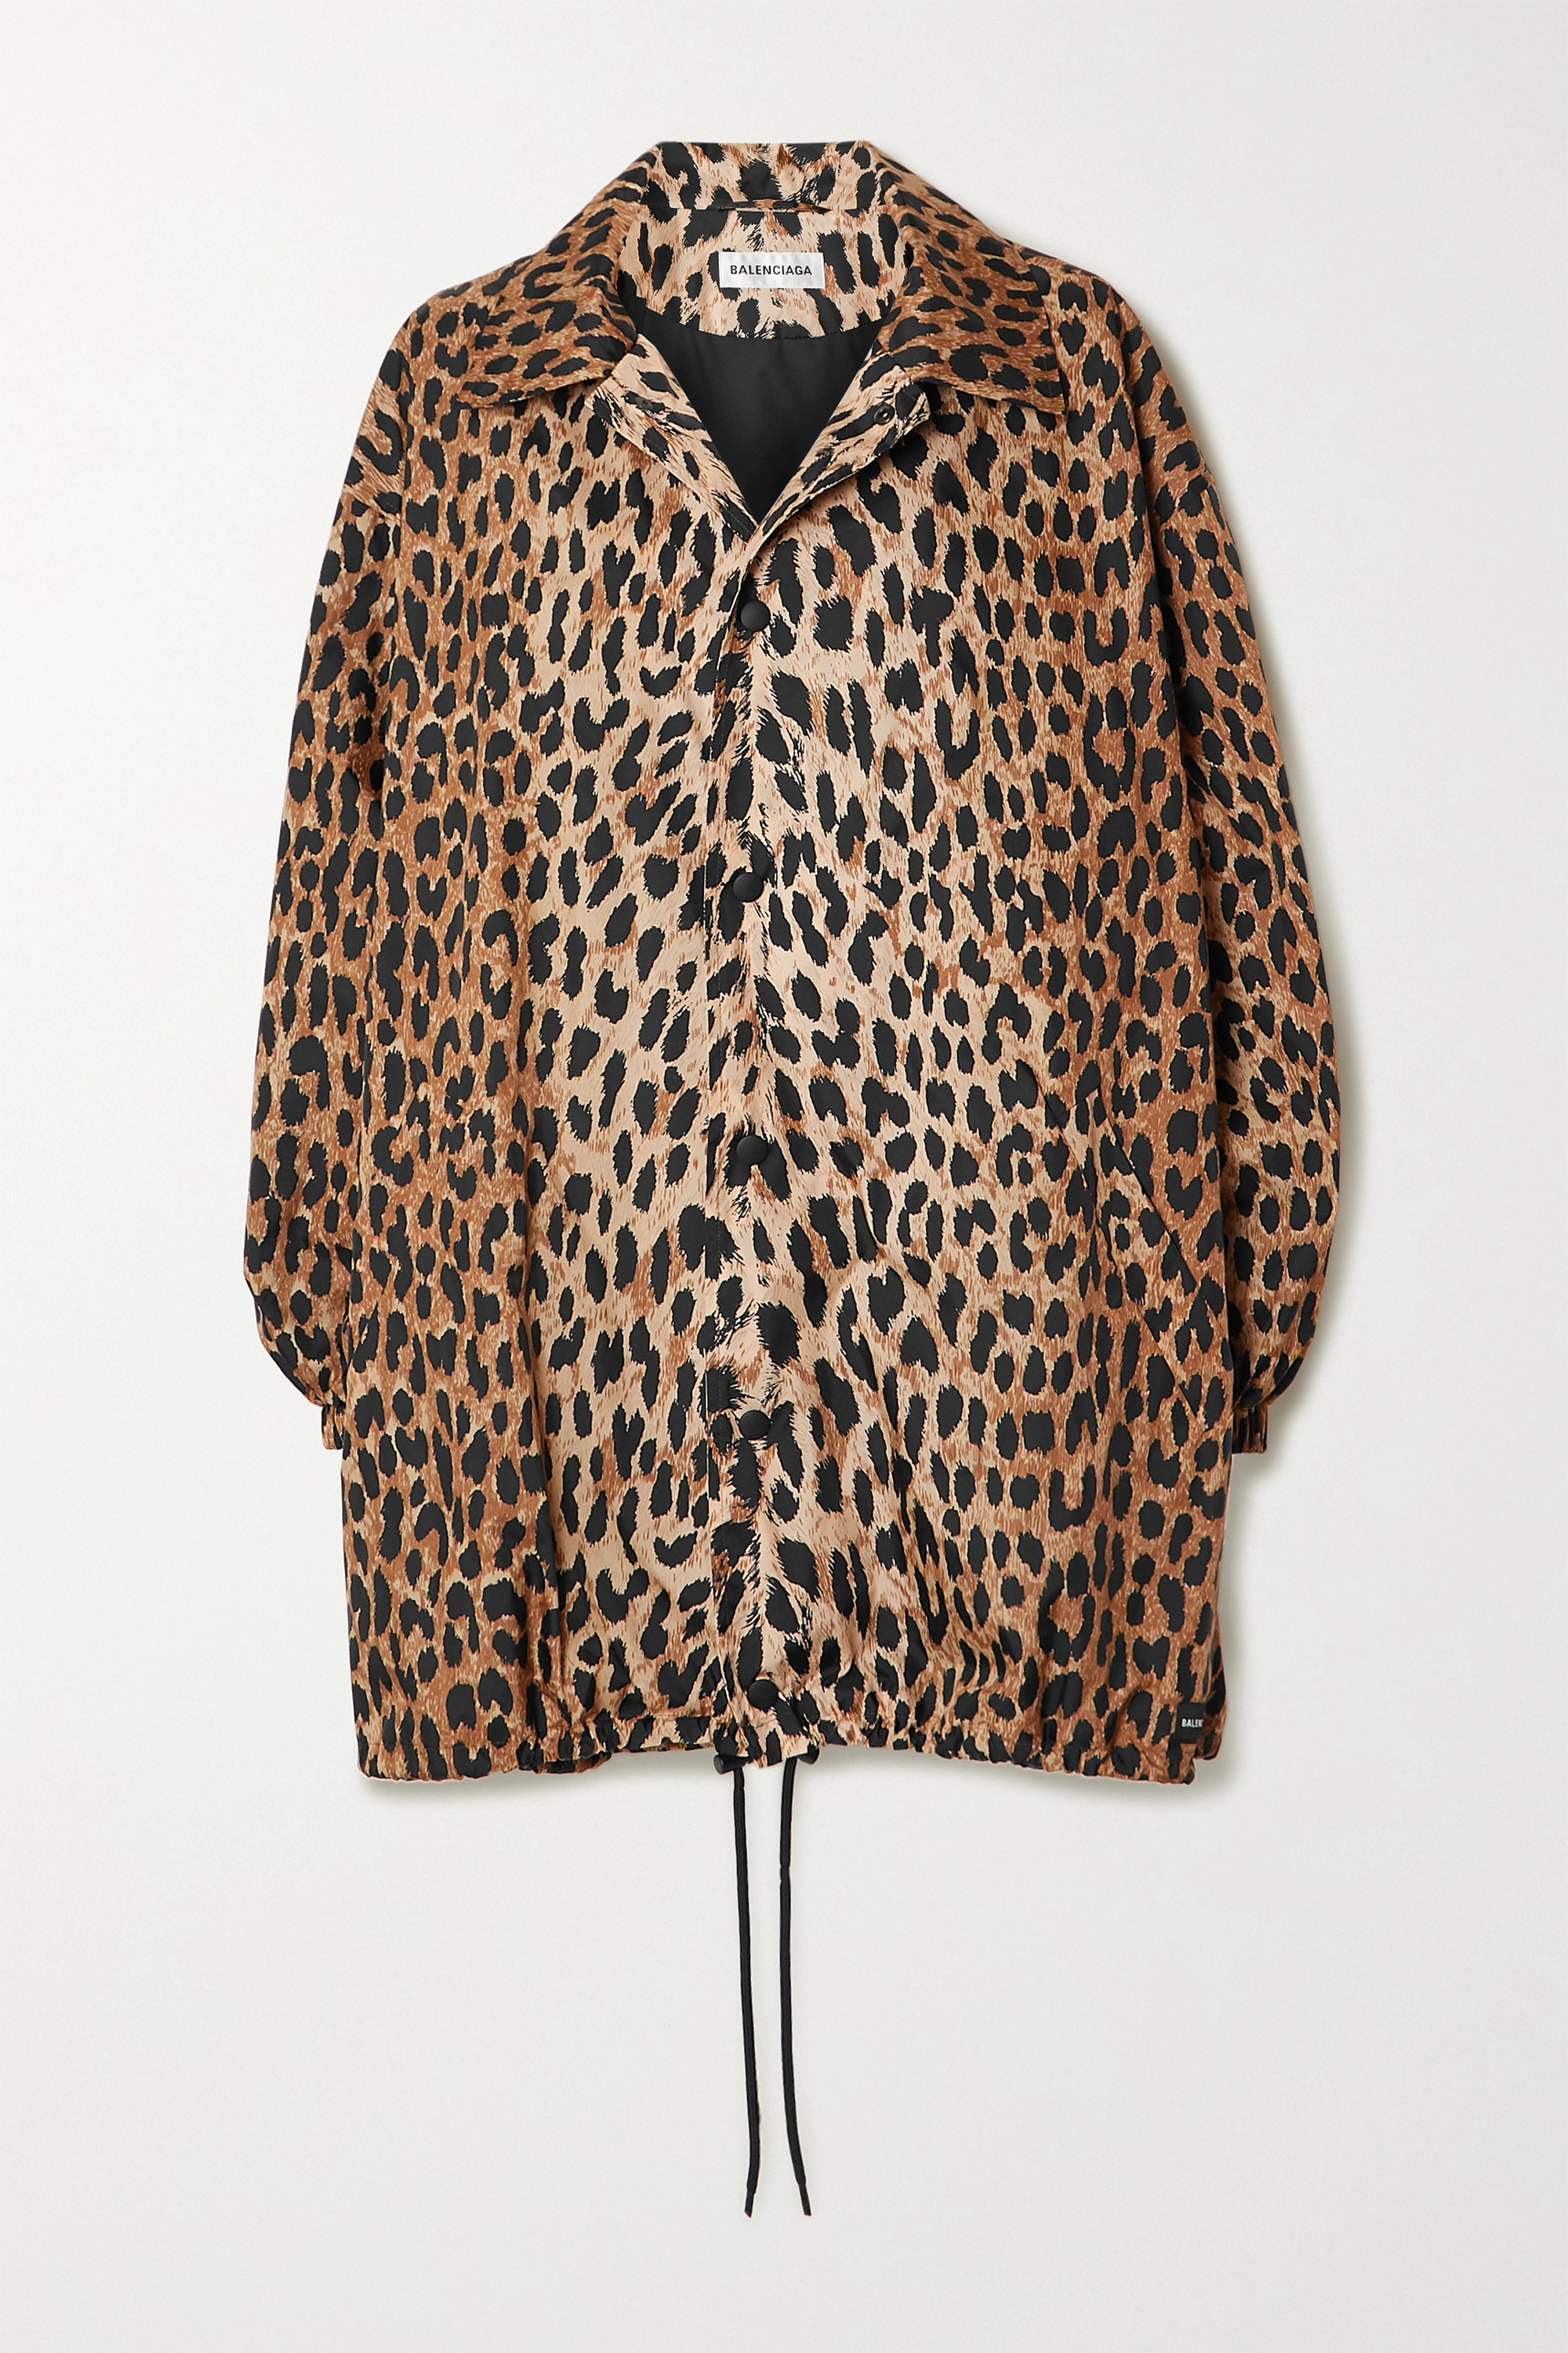 Oversized leopard-print shell raincoat by Balenciaga, available on net-a-porter.com for $995 Hailey Baldwin Outerwear Exact Product